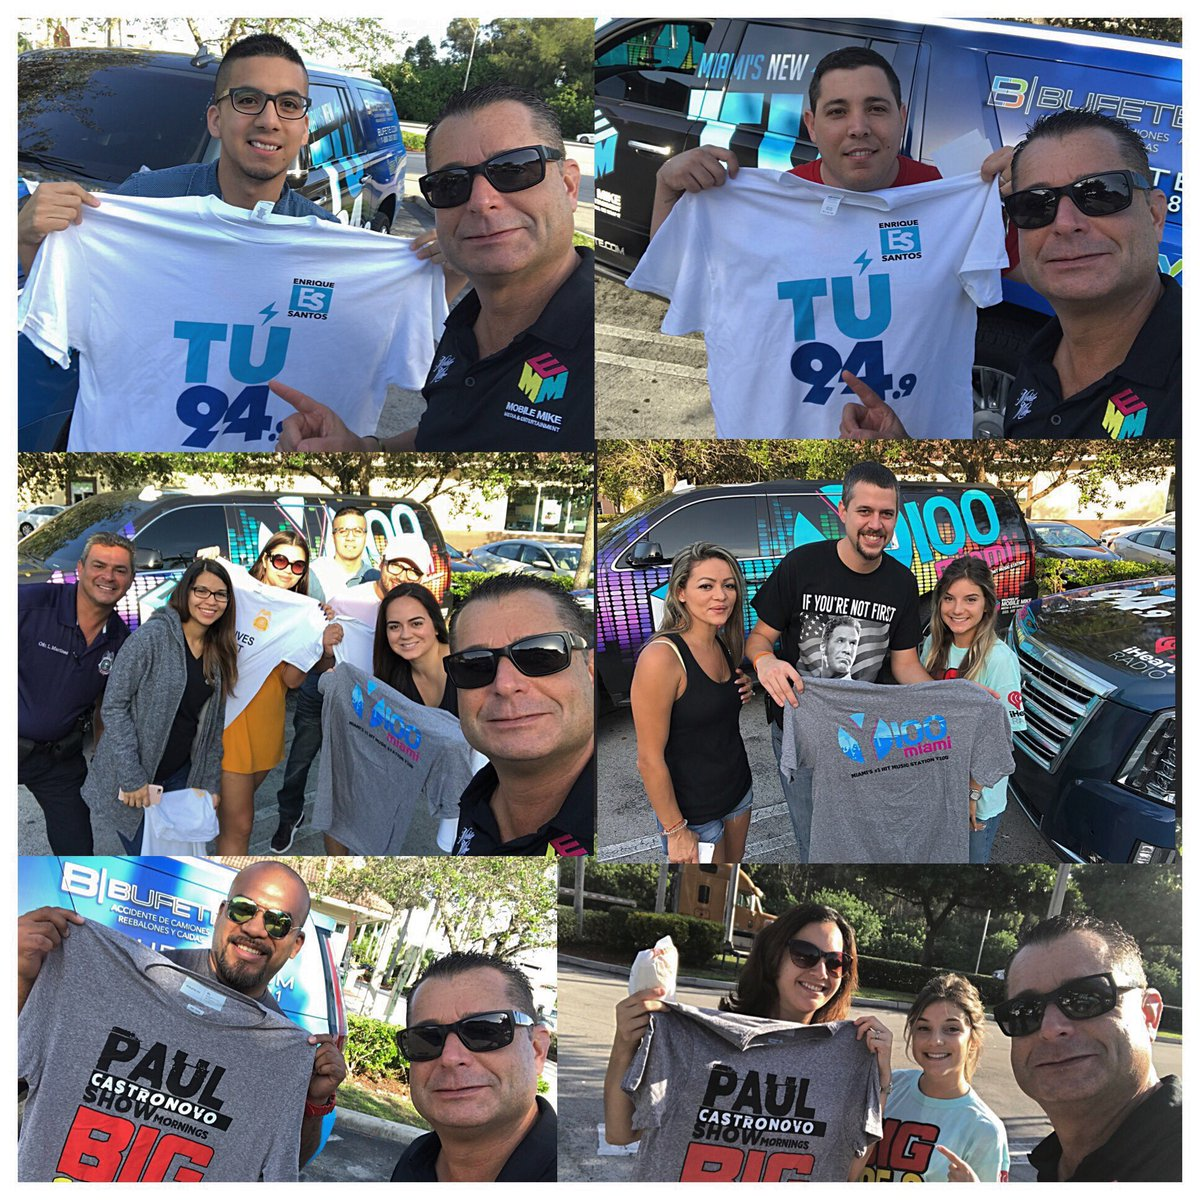 #McDonalds #FreePrizes #GoodMorning from #TU949 #Y100Miami #Big1059 #939MIA #1035theBeat #WIOD #MobileMike #FreeTShirts from #Bufete<br>http://pic.twitter.com/yY88aVA4uS